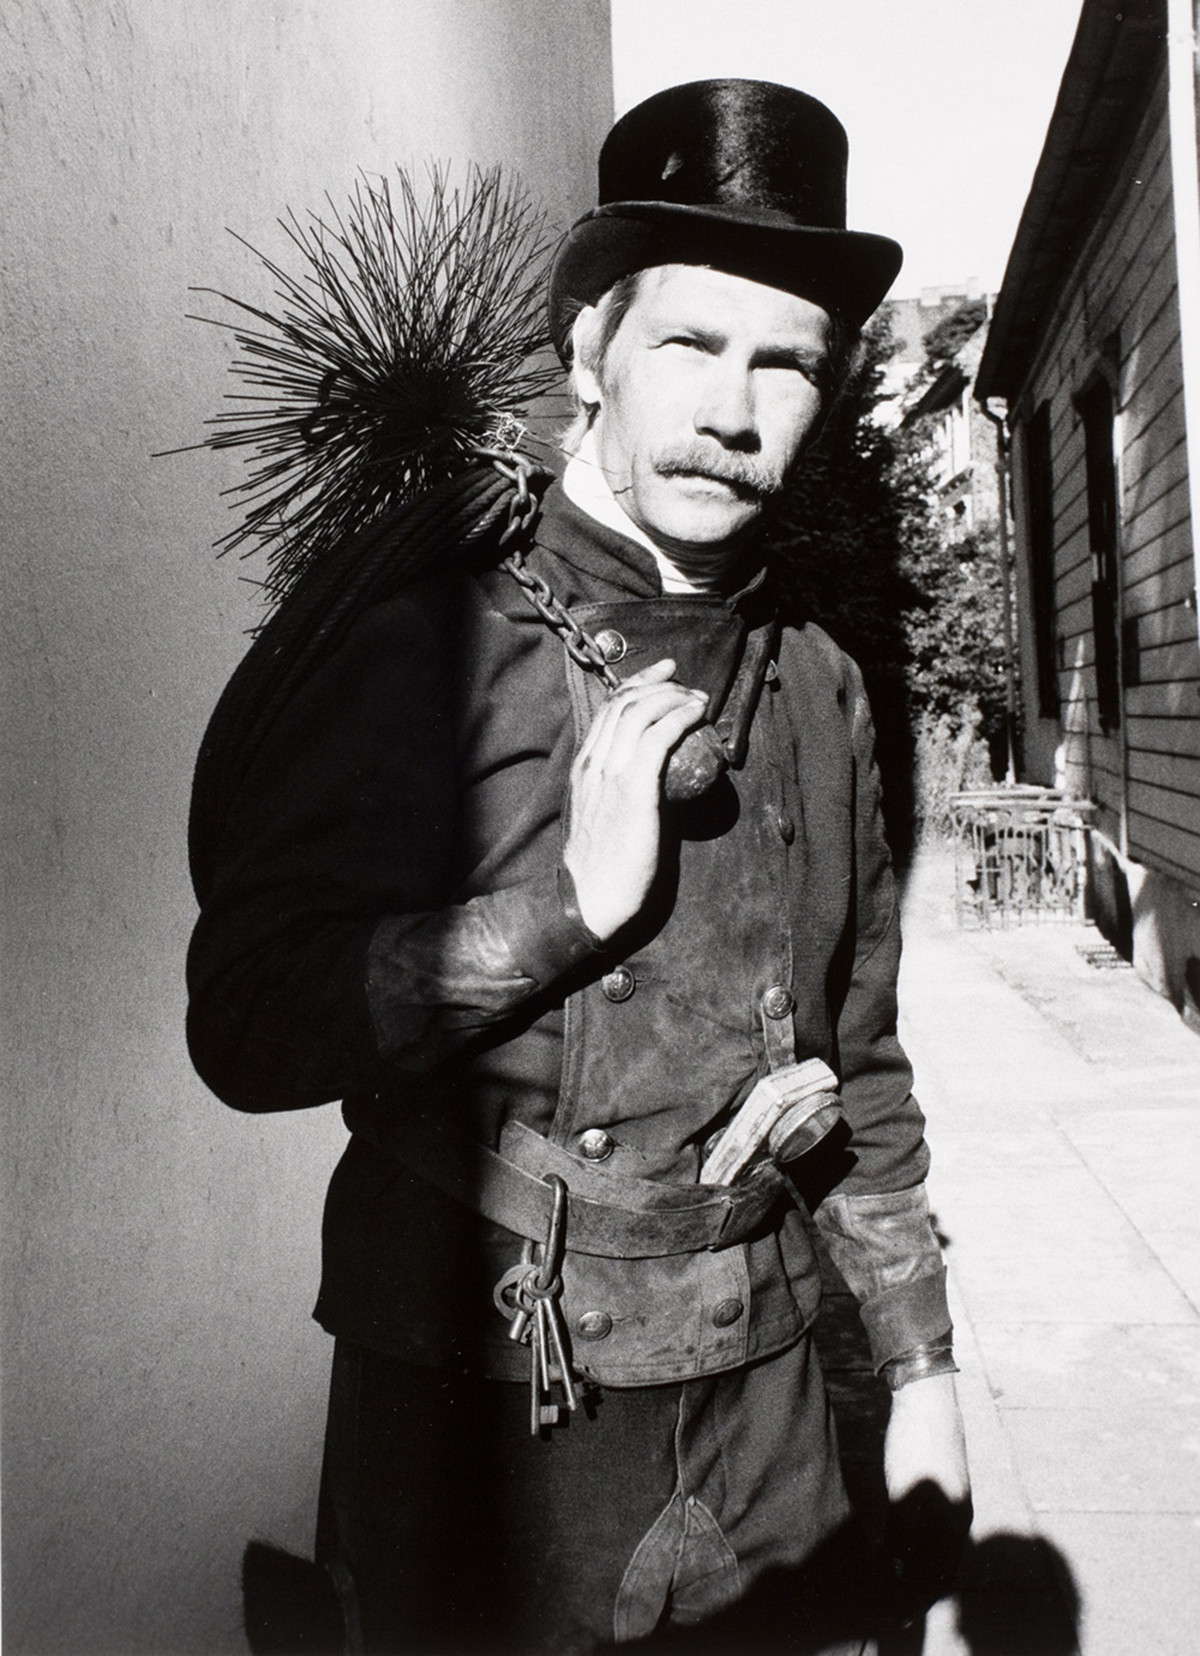 Chimney sweep in Hamburg, Germany, 1979.